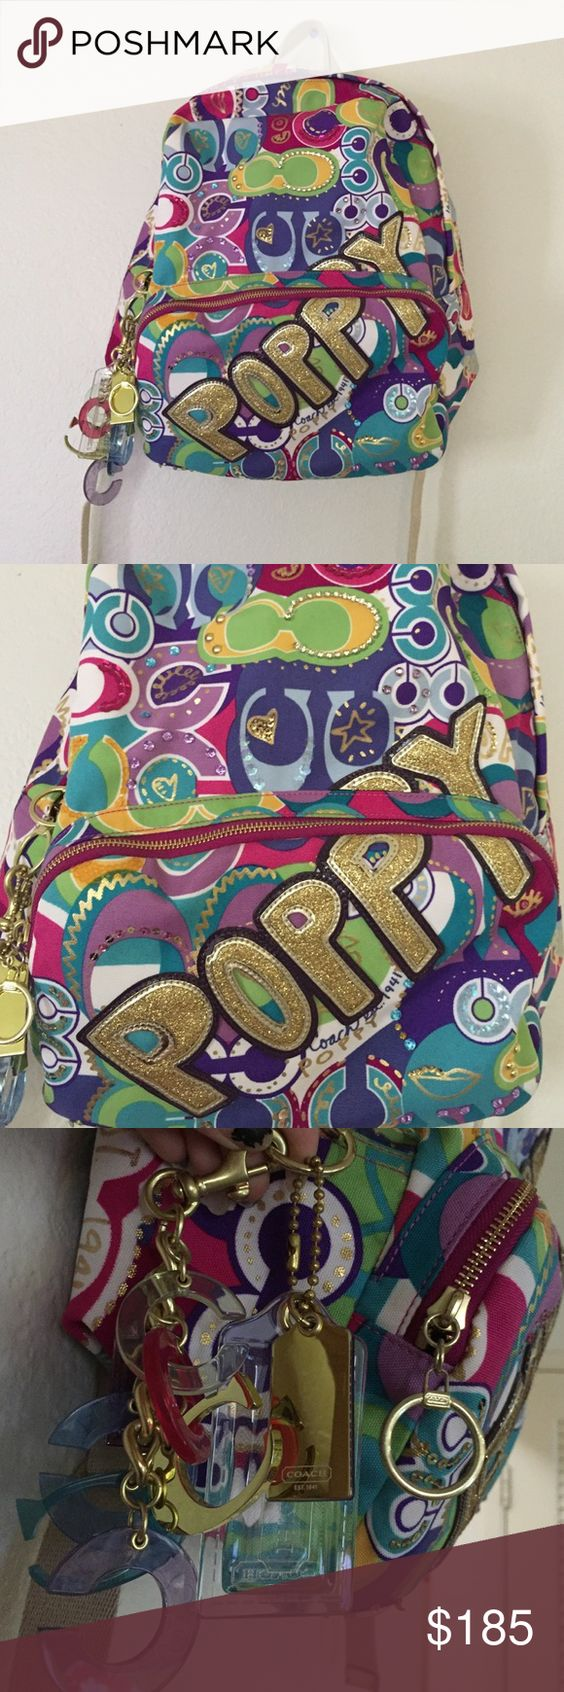 Limited edition Coach Poppy backpack Limited Edition! Coach poppy backpack! Brand new never used. Excellent condition. External coach keychain attached also! Coach Bags Backpacks